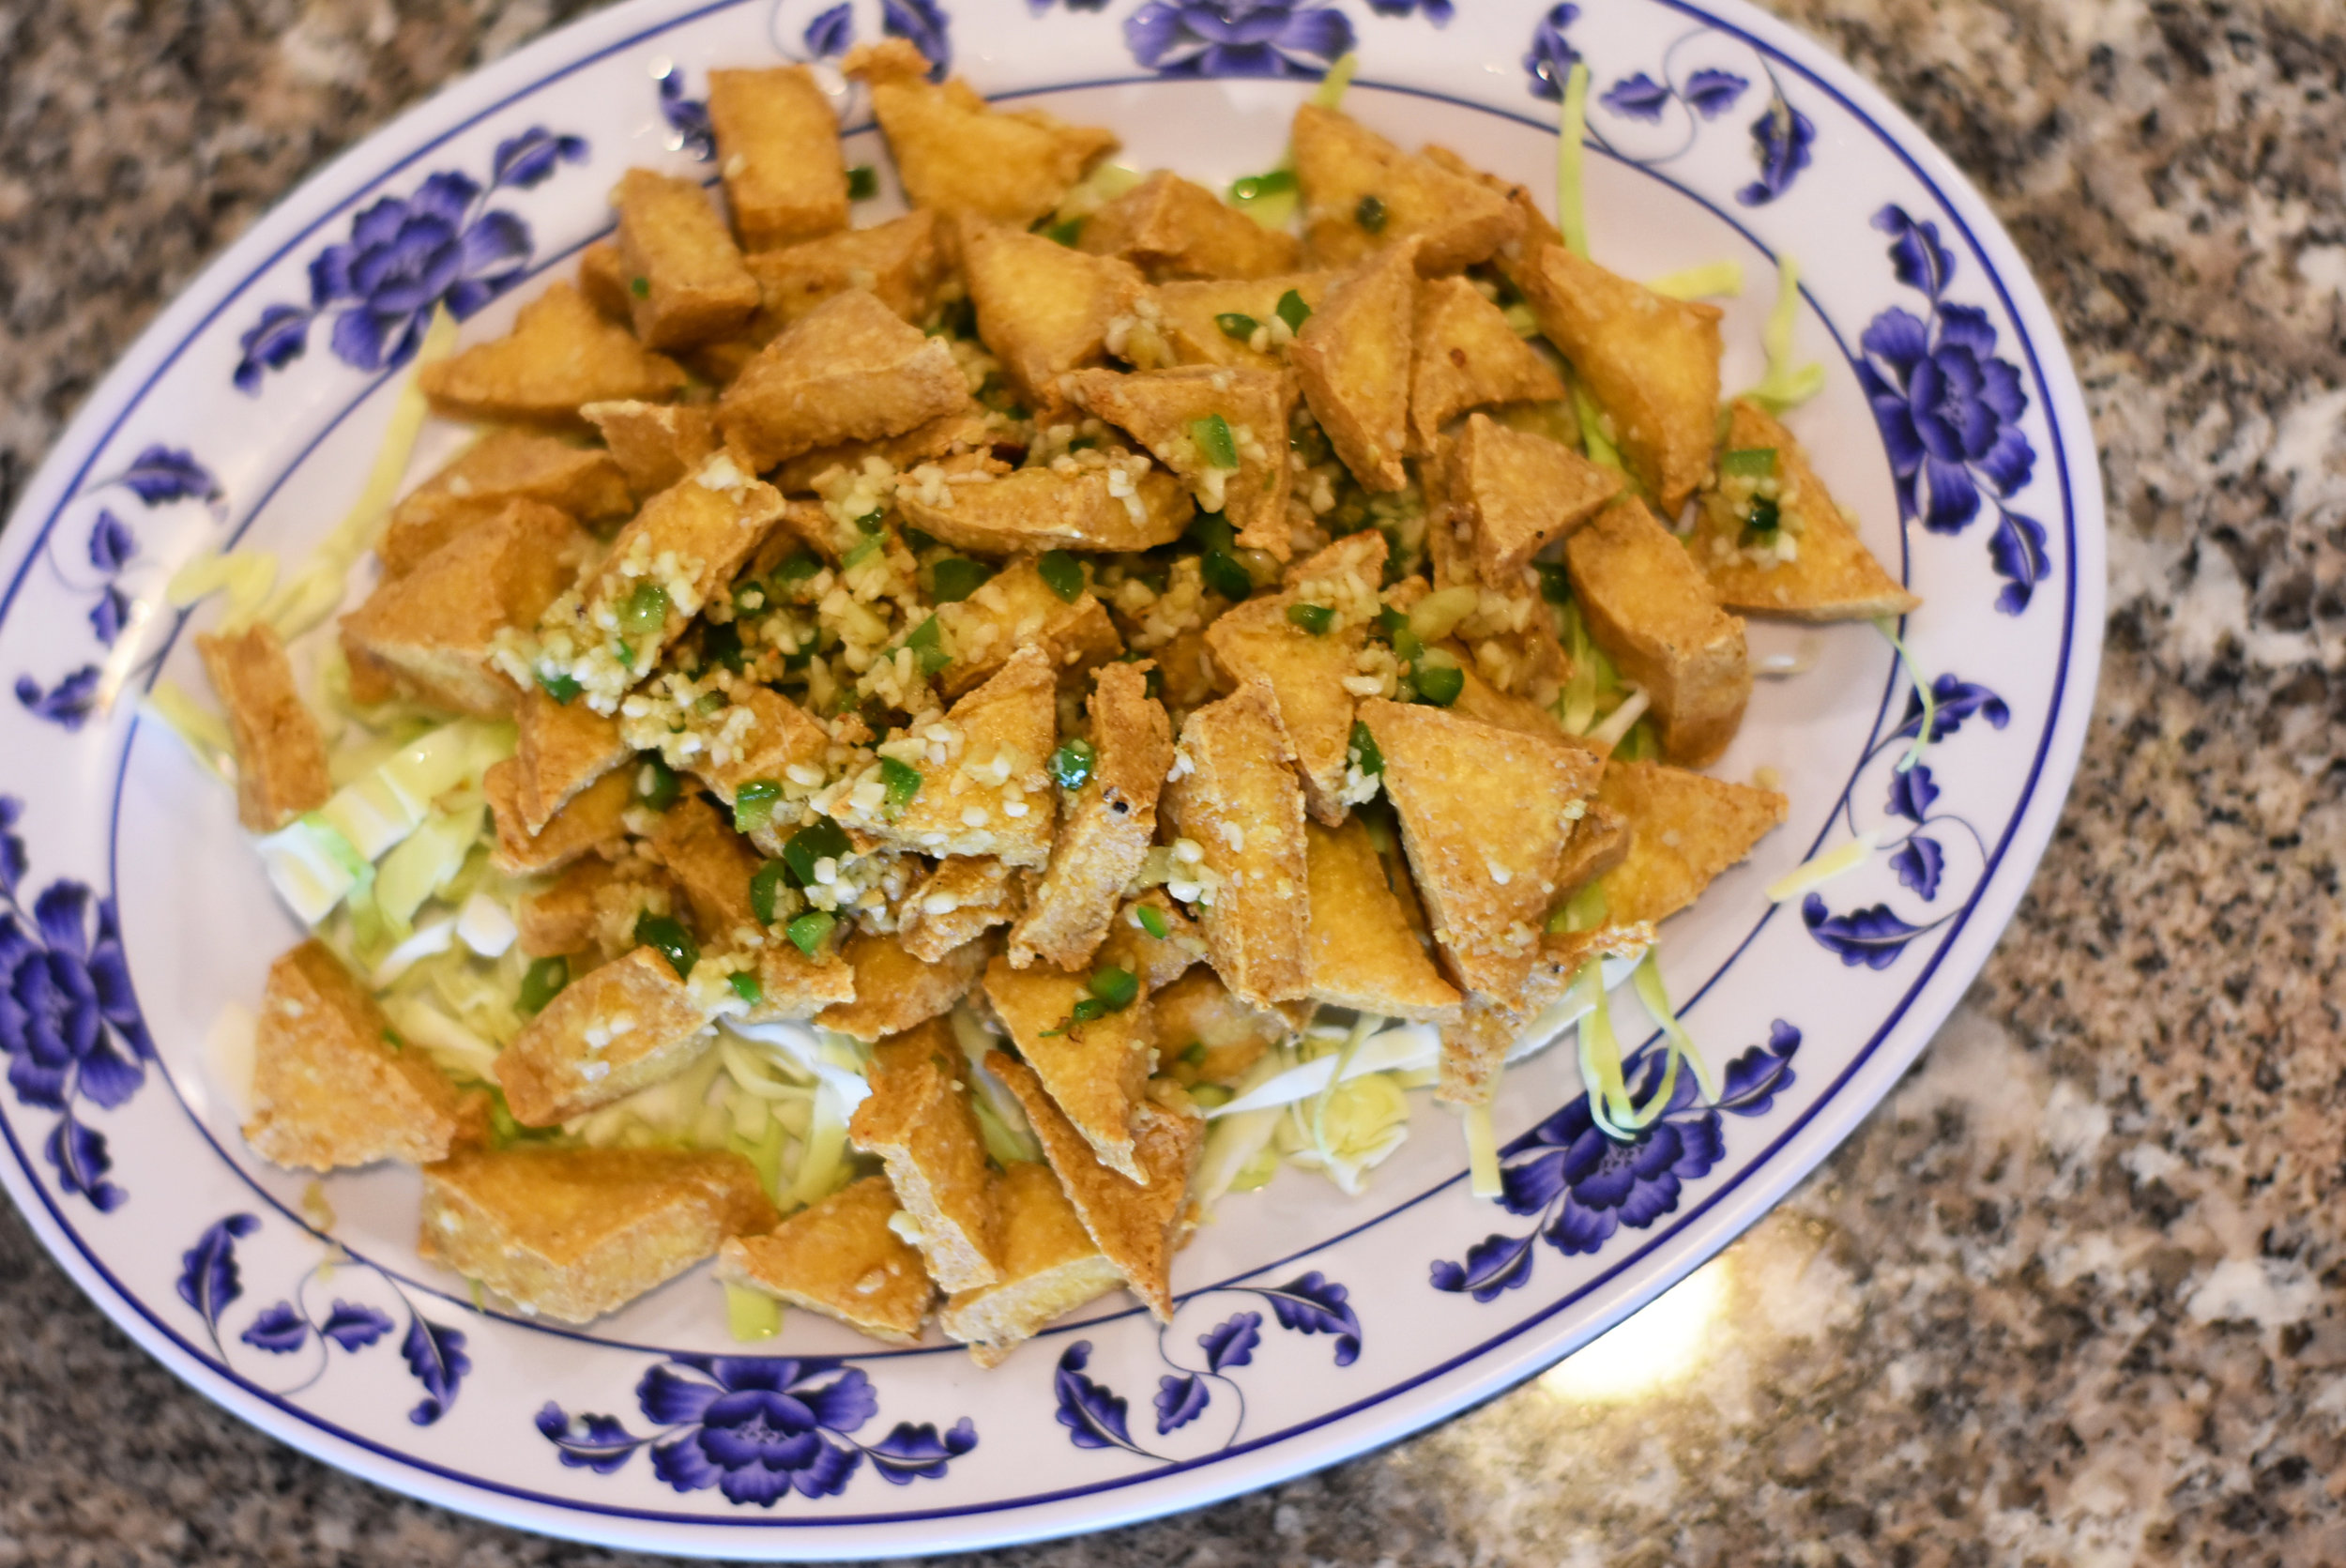 Fried Tofu with Spiced Salt  |  9.99